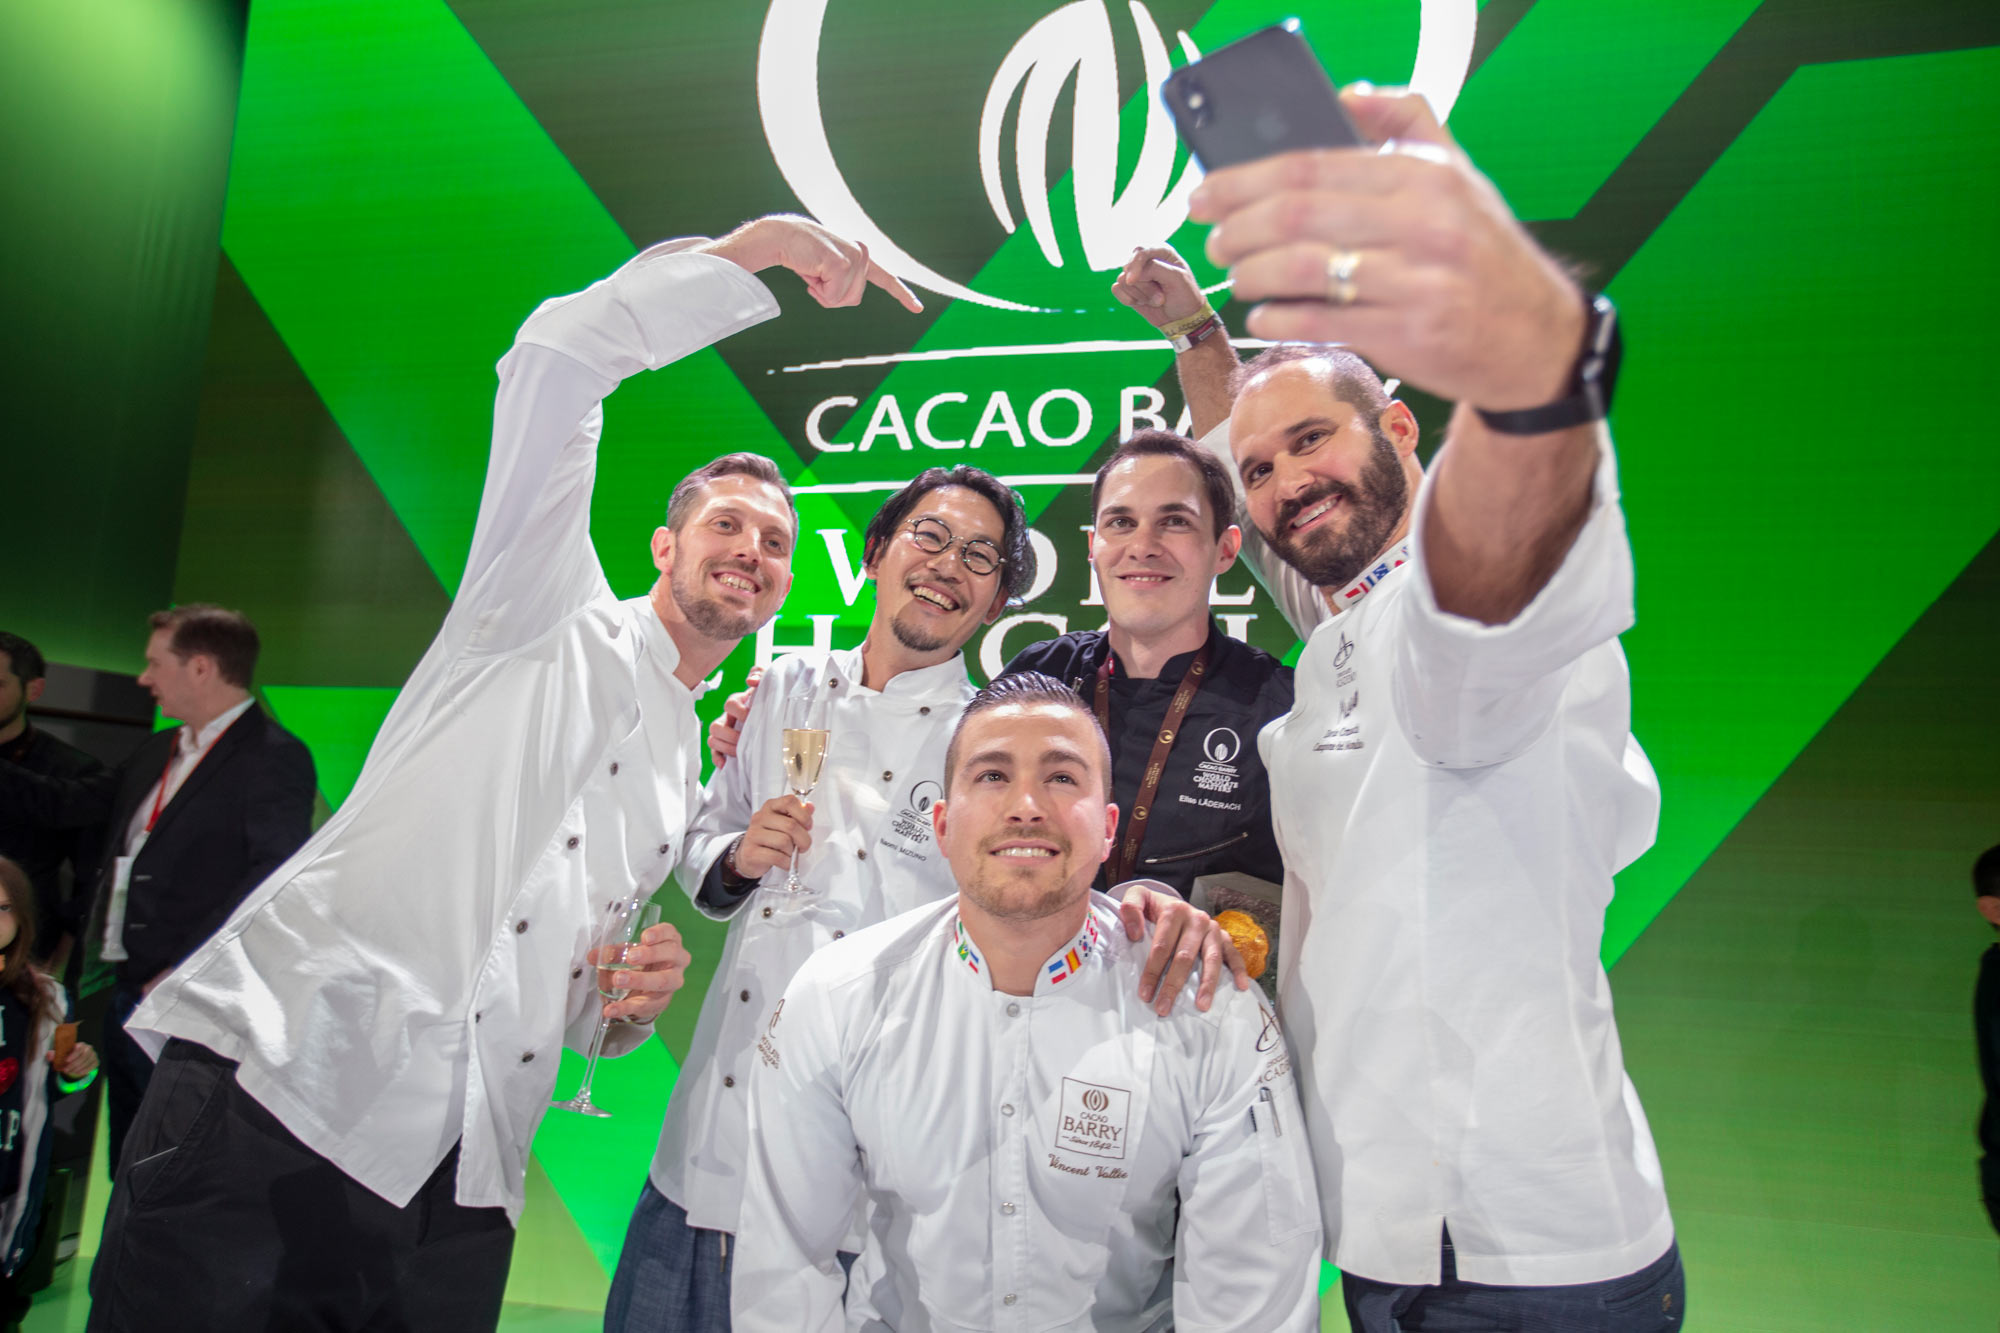 The last 5 winners of the World Chocolate Masters. 2018-Elías Läderach, 2015-Vincent Vallée, 2013 Davide Comaschi, 2011-Frank Haasnoot and 2007-Naomi Mizuno.